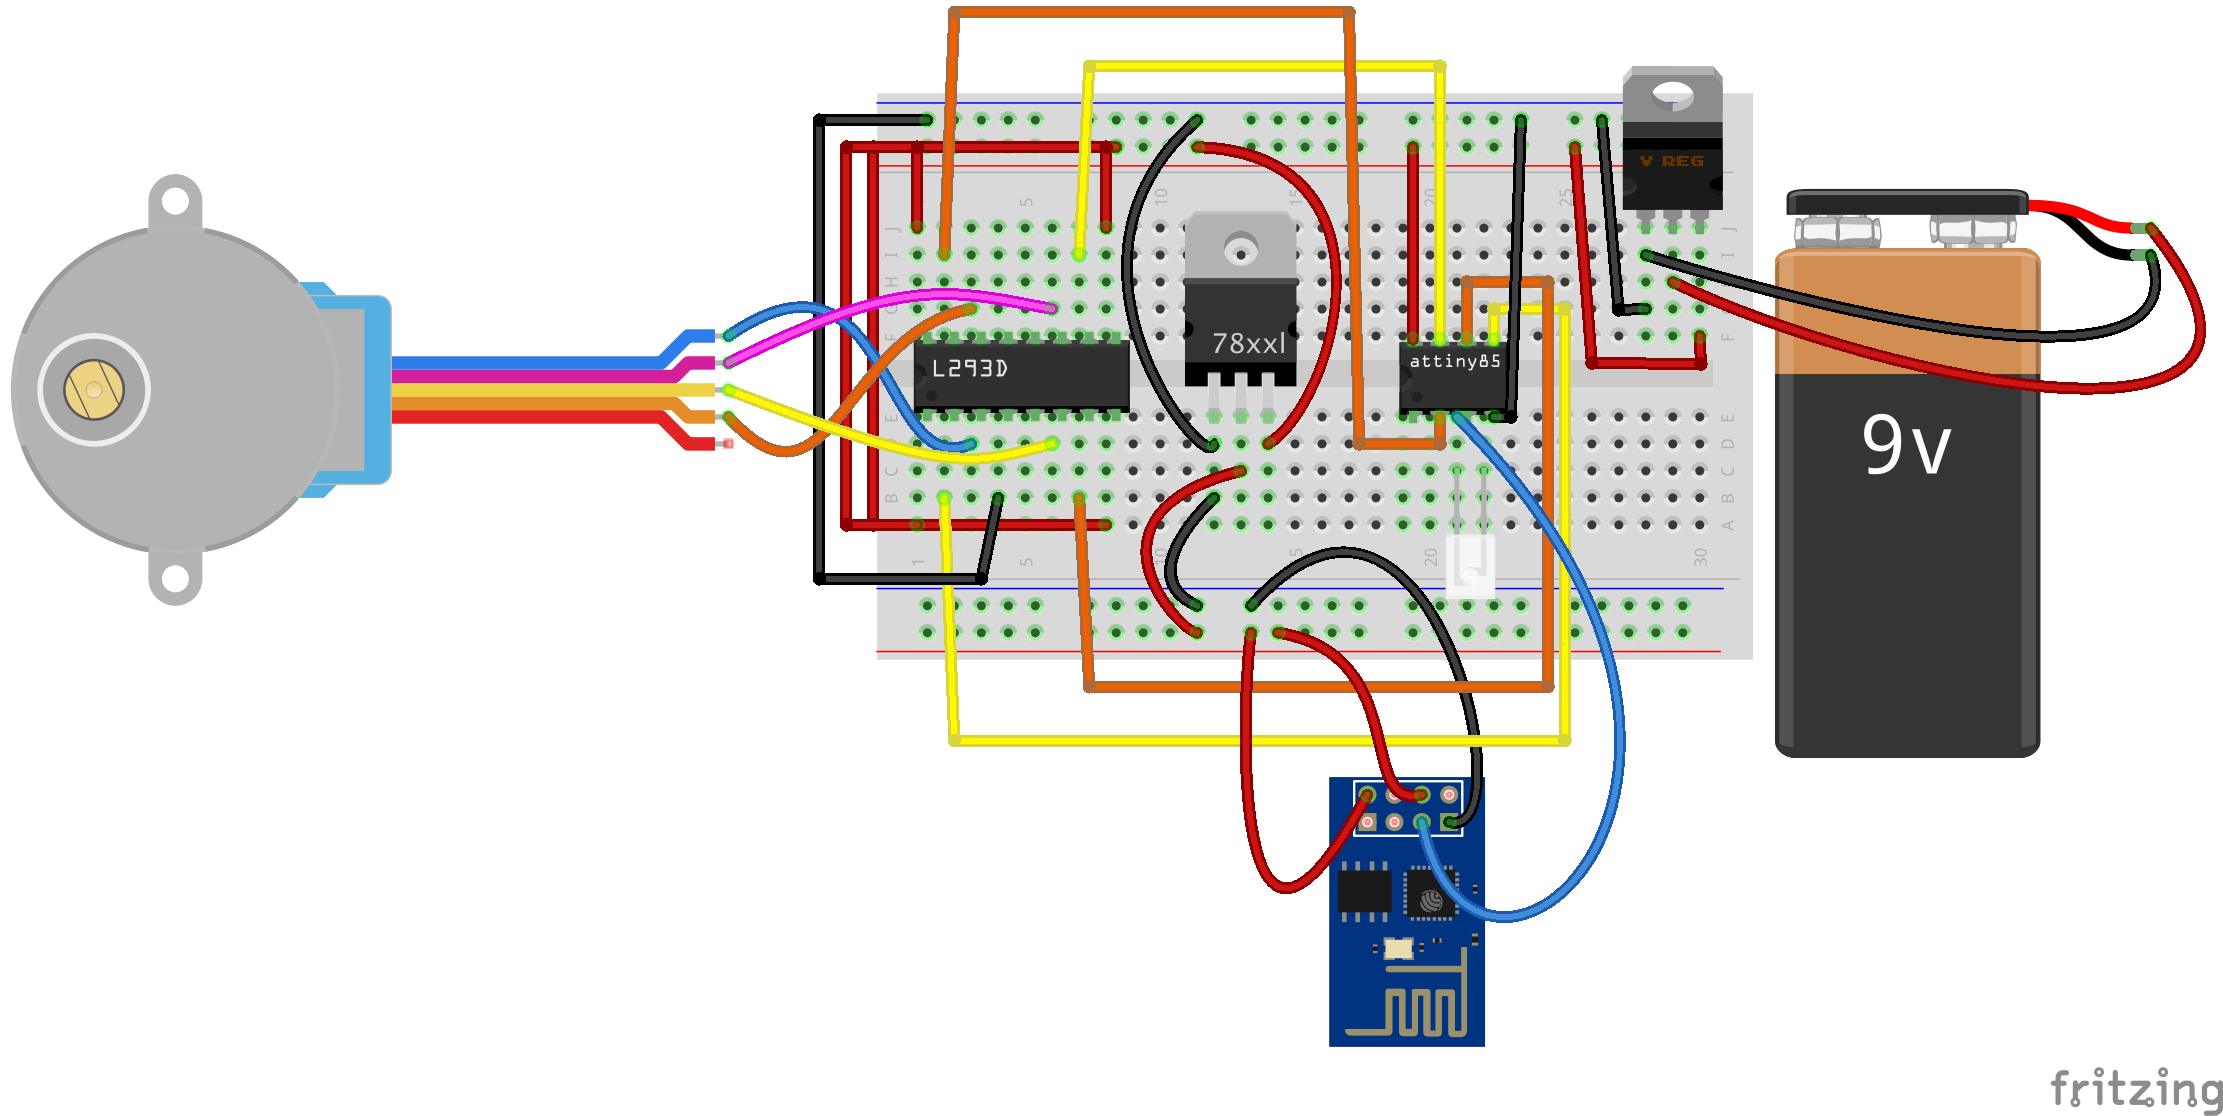 Wiring L293d Esp 12e Wire Center Lm833 Dual Lownoise Audio Op Amp Ic Nightfire Electronics Llc Wifi Controlled Motors Using Esp8266 And Attiny85 Rh Blog Nyl Io Data Sheet